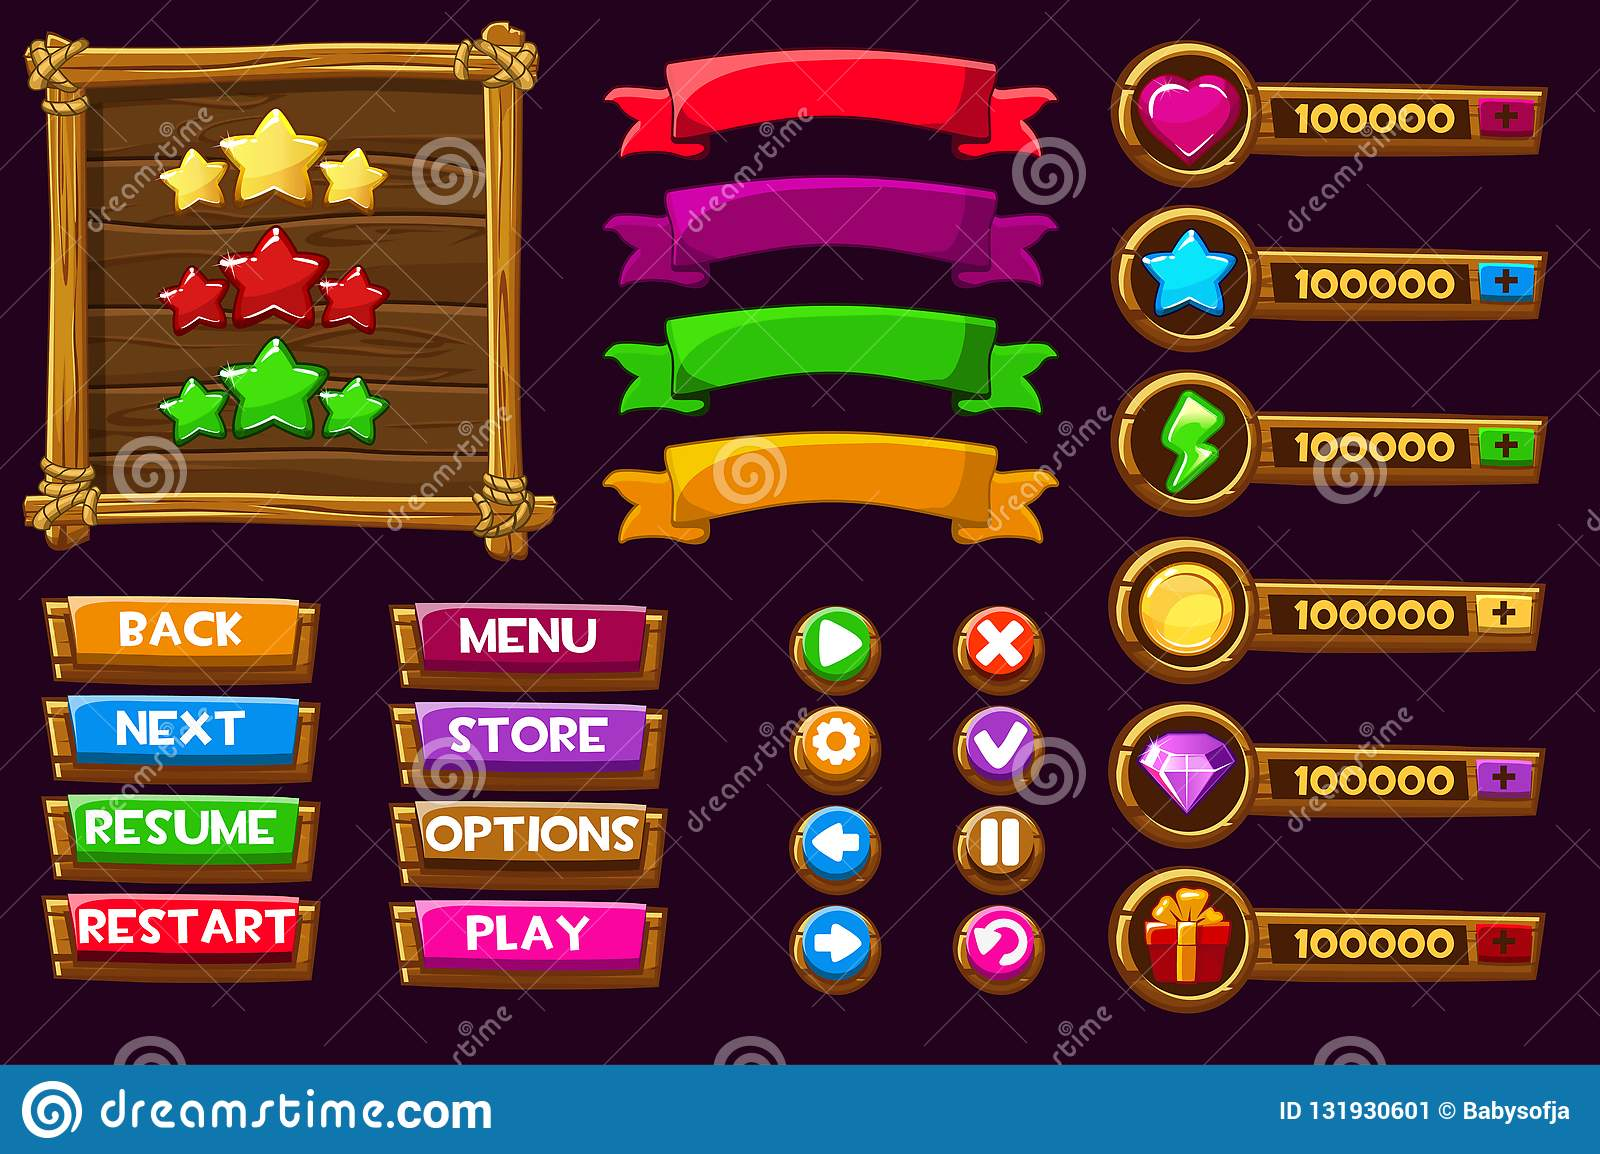 Vector game ui kit. Complete menu of graphical user interface GUI to build 2D games. Can be used in mobile or web games